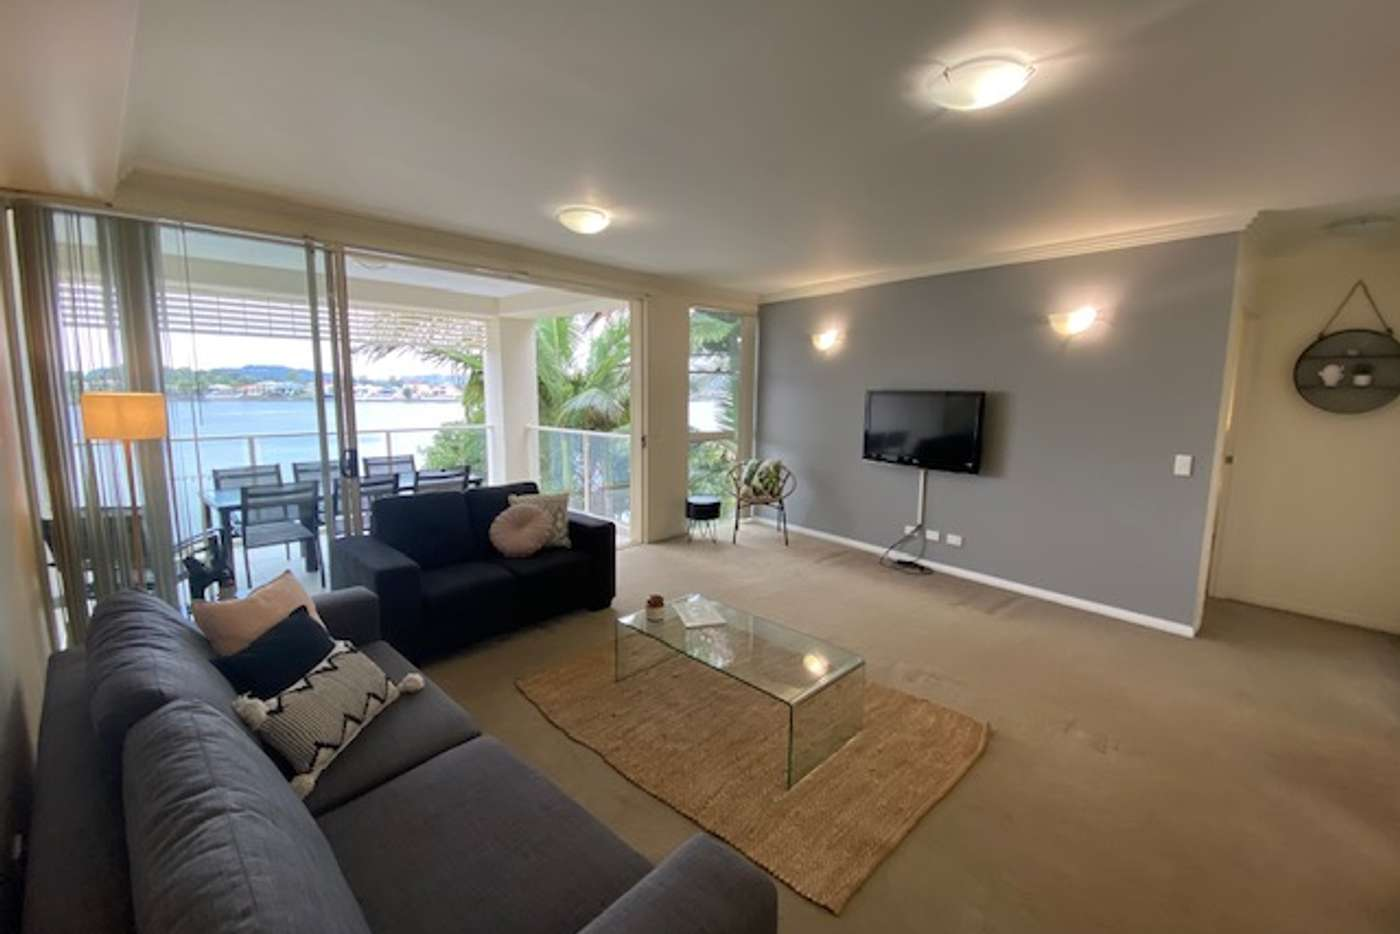 Main view of Homely apartment listing, 166/251 Varsity Pde, Varsity Lakes QLD 4227